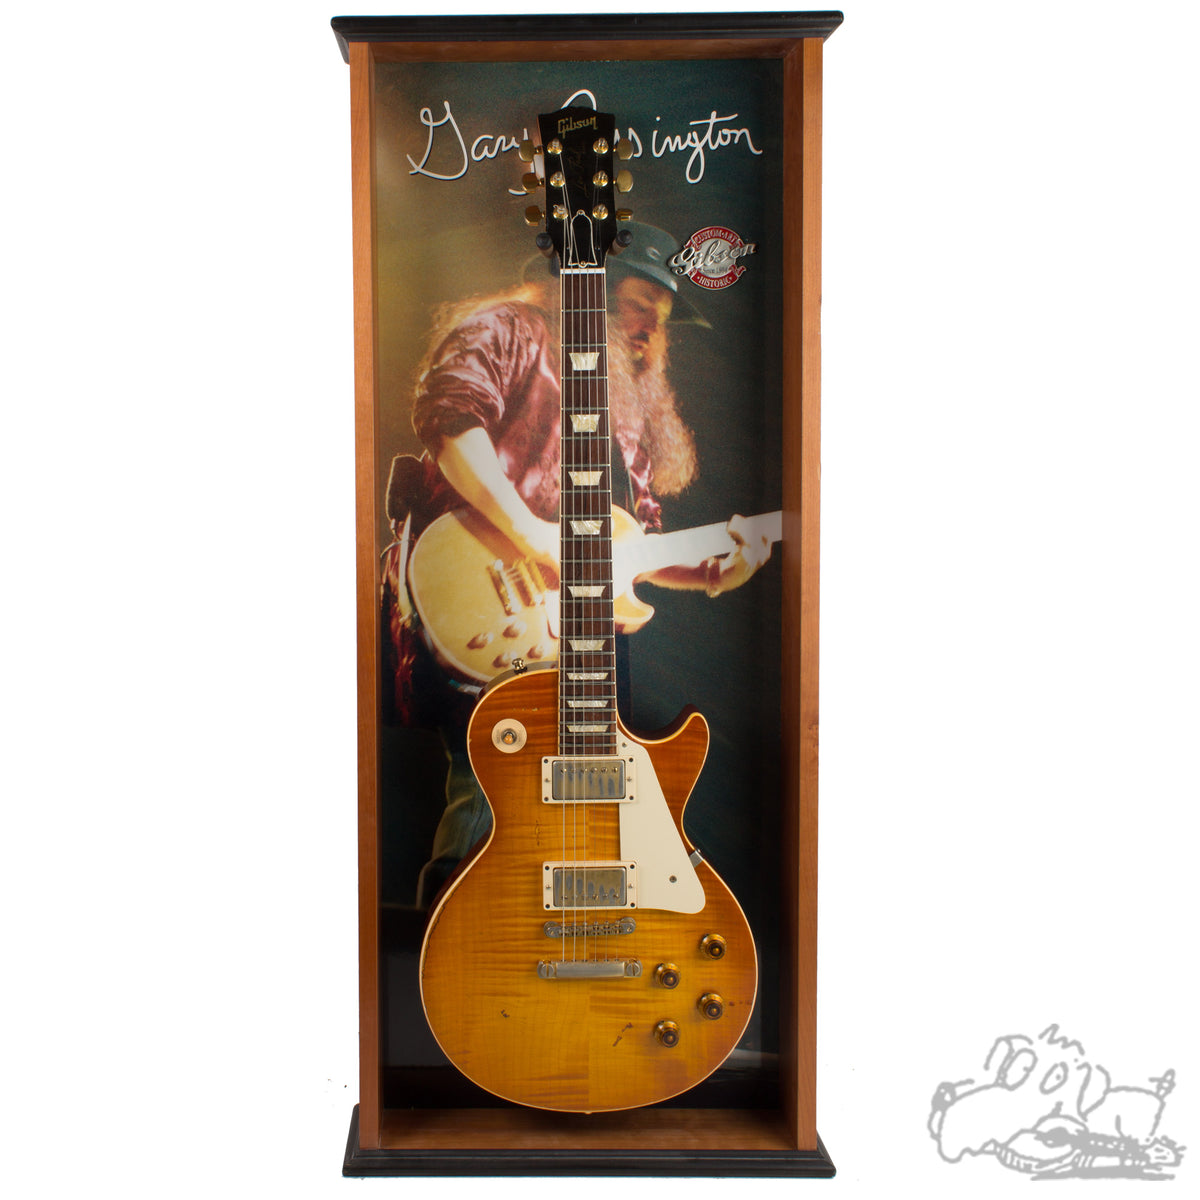 2002 Gibson Custom Shop Les Paul Gary Rossington